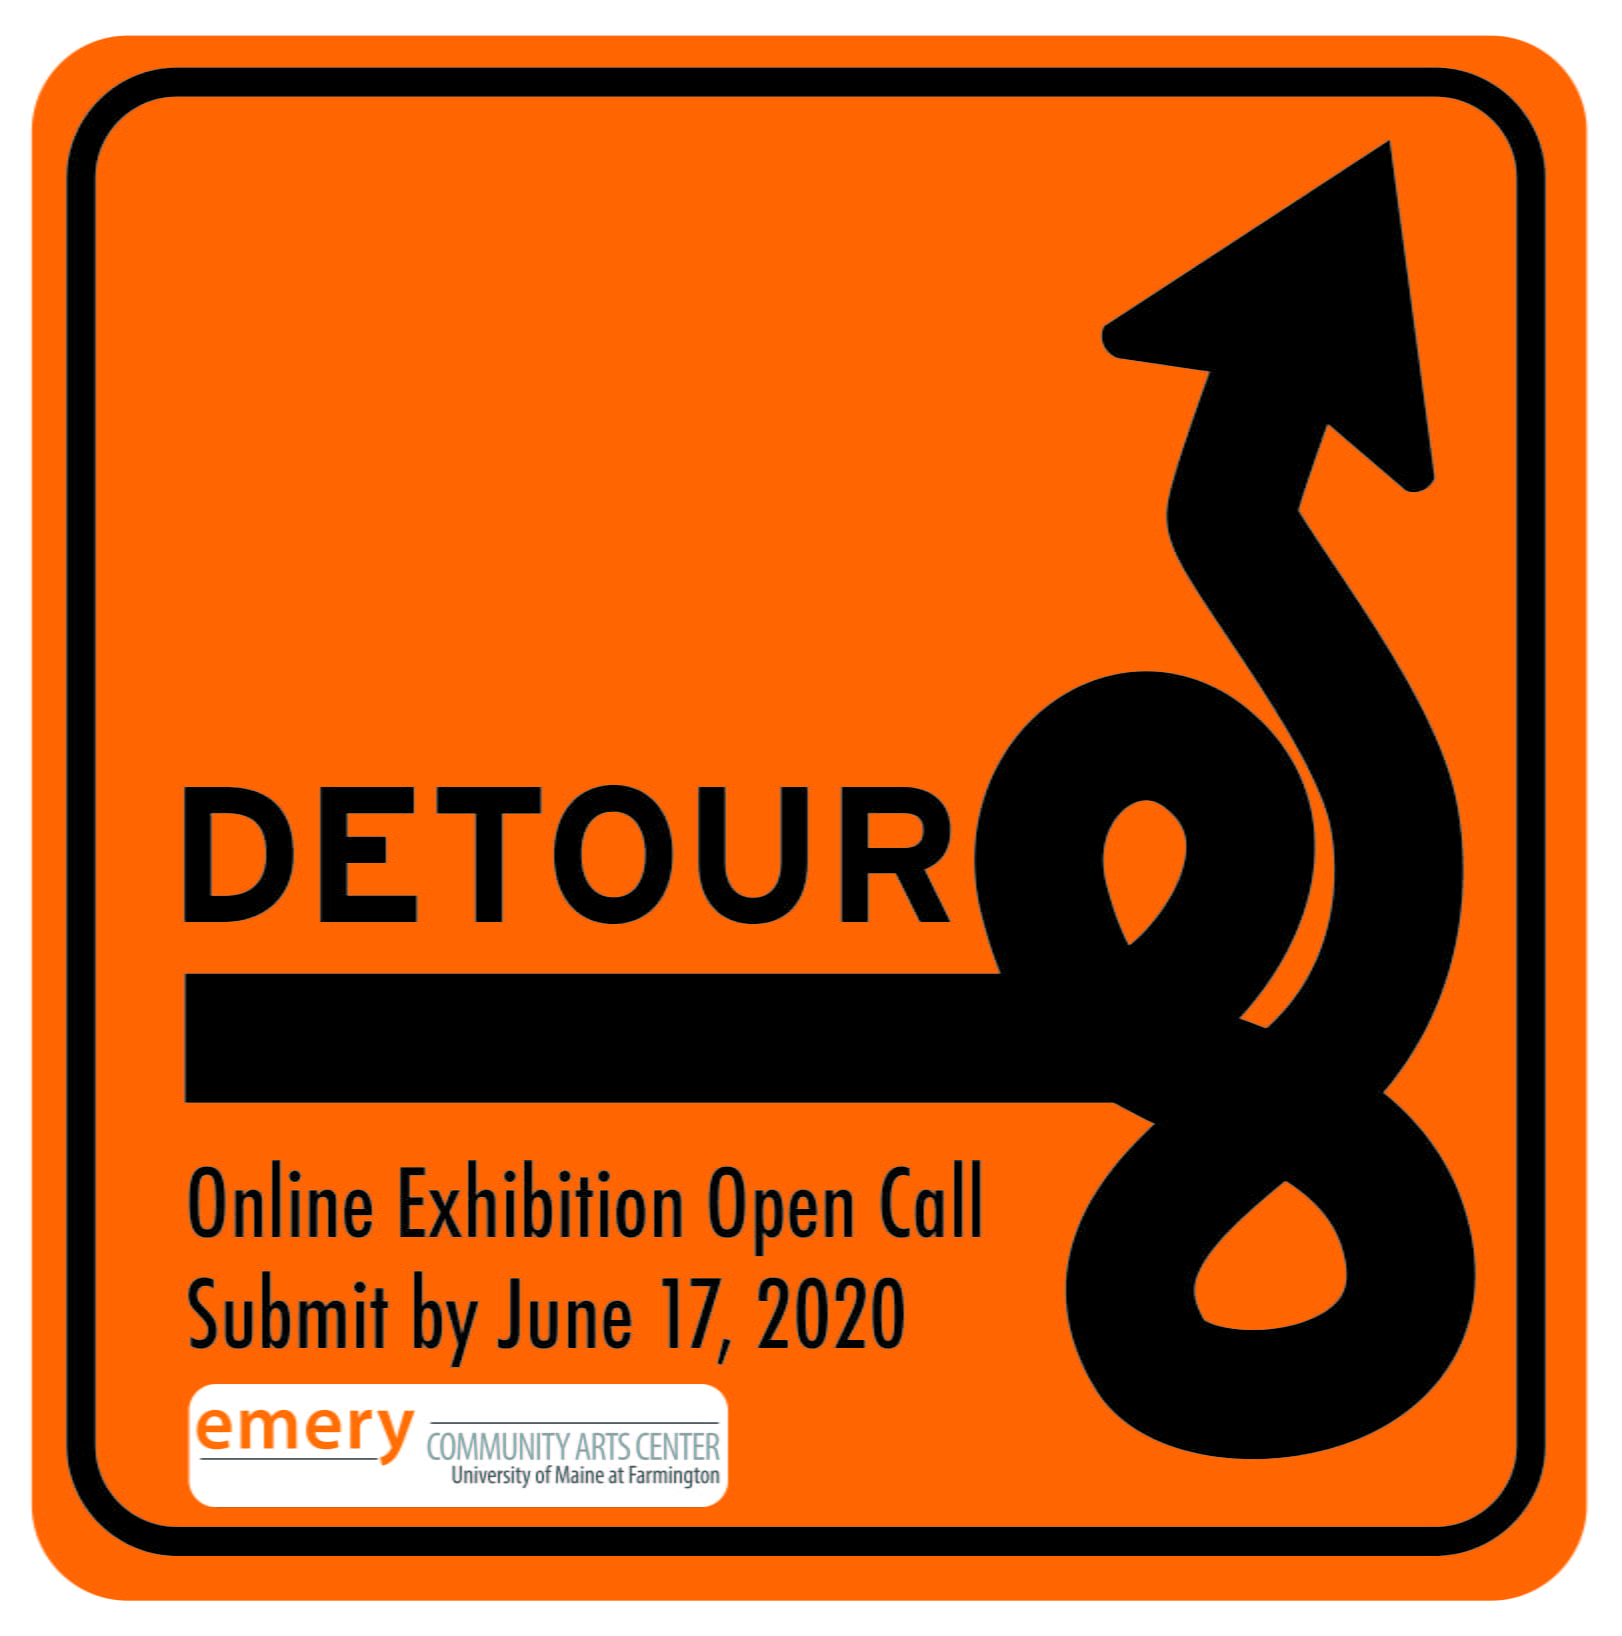 DETOUR Open Call Poster